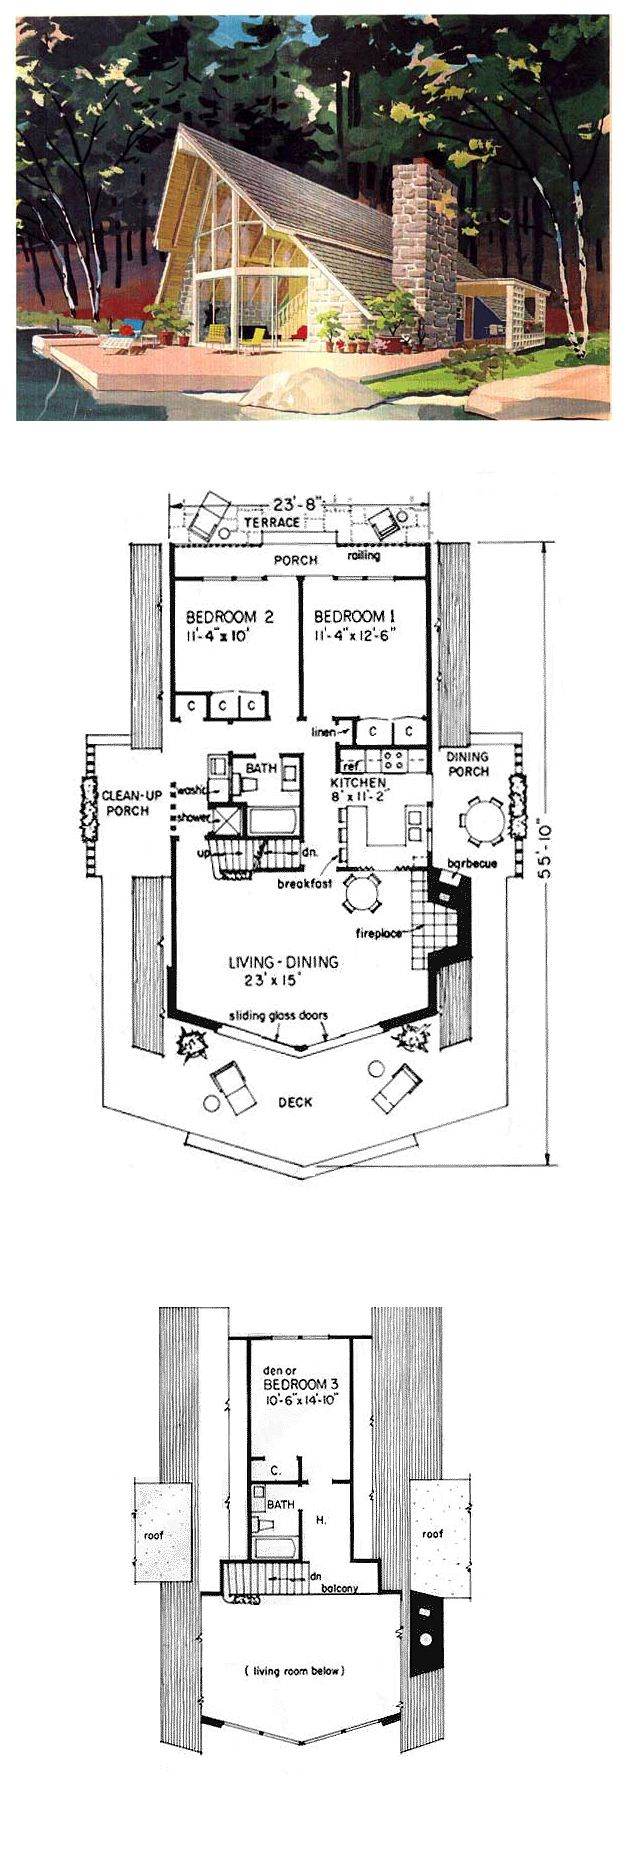 the 17 best images about a frame house plans on pinterest woods a frame style cool house plan id chp 5581 total living area